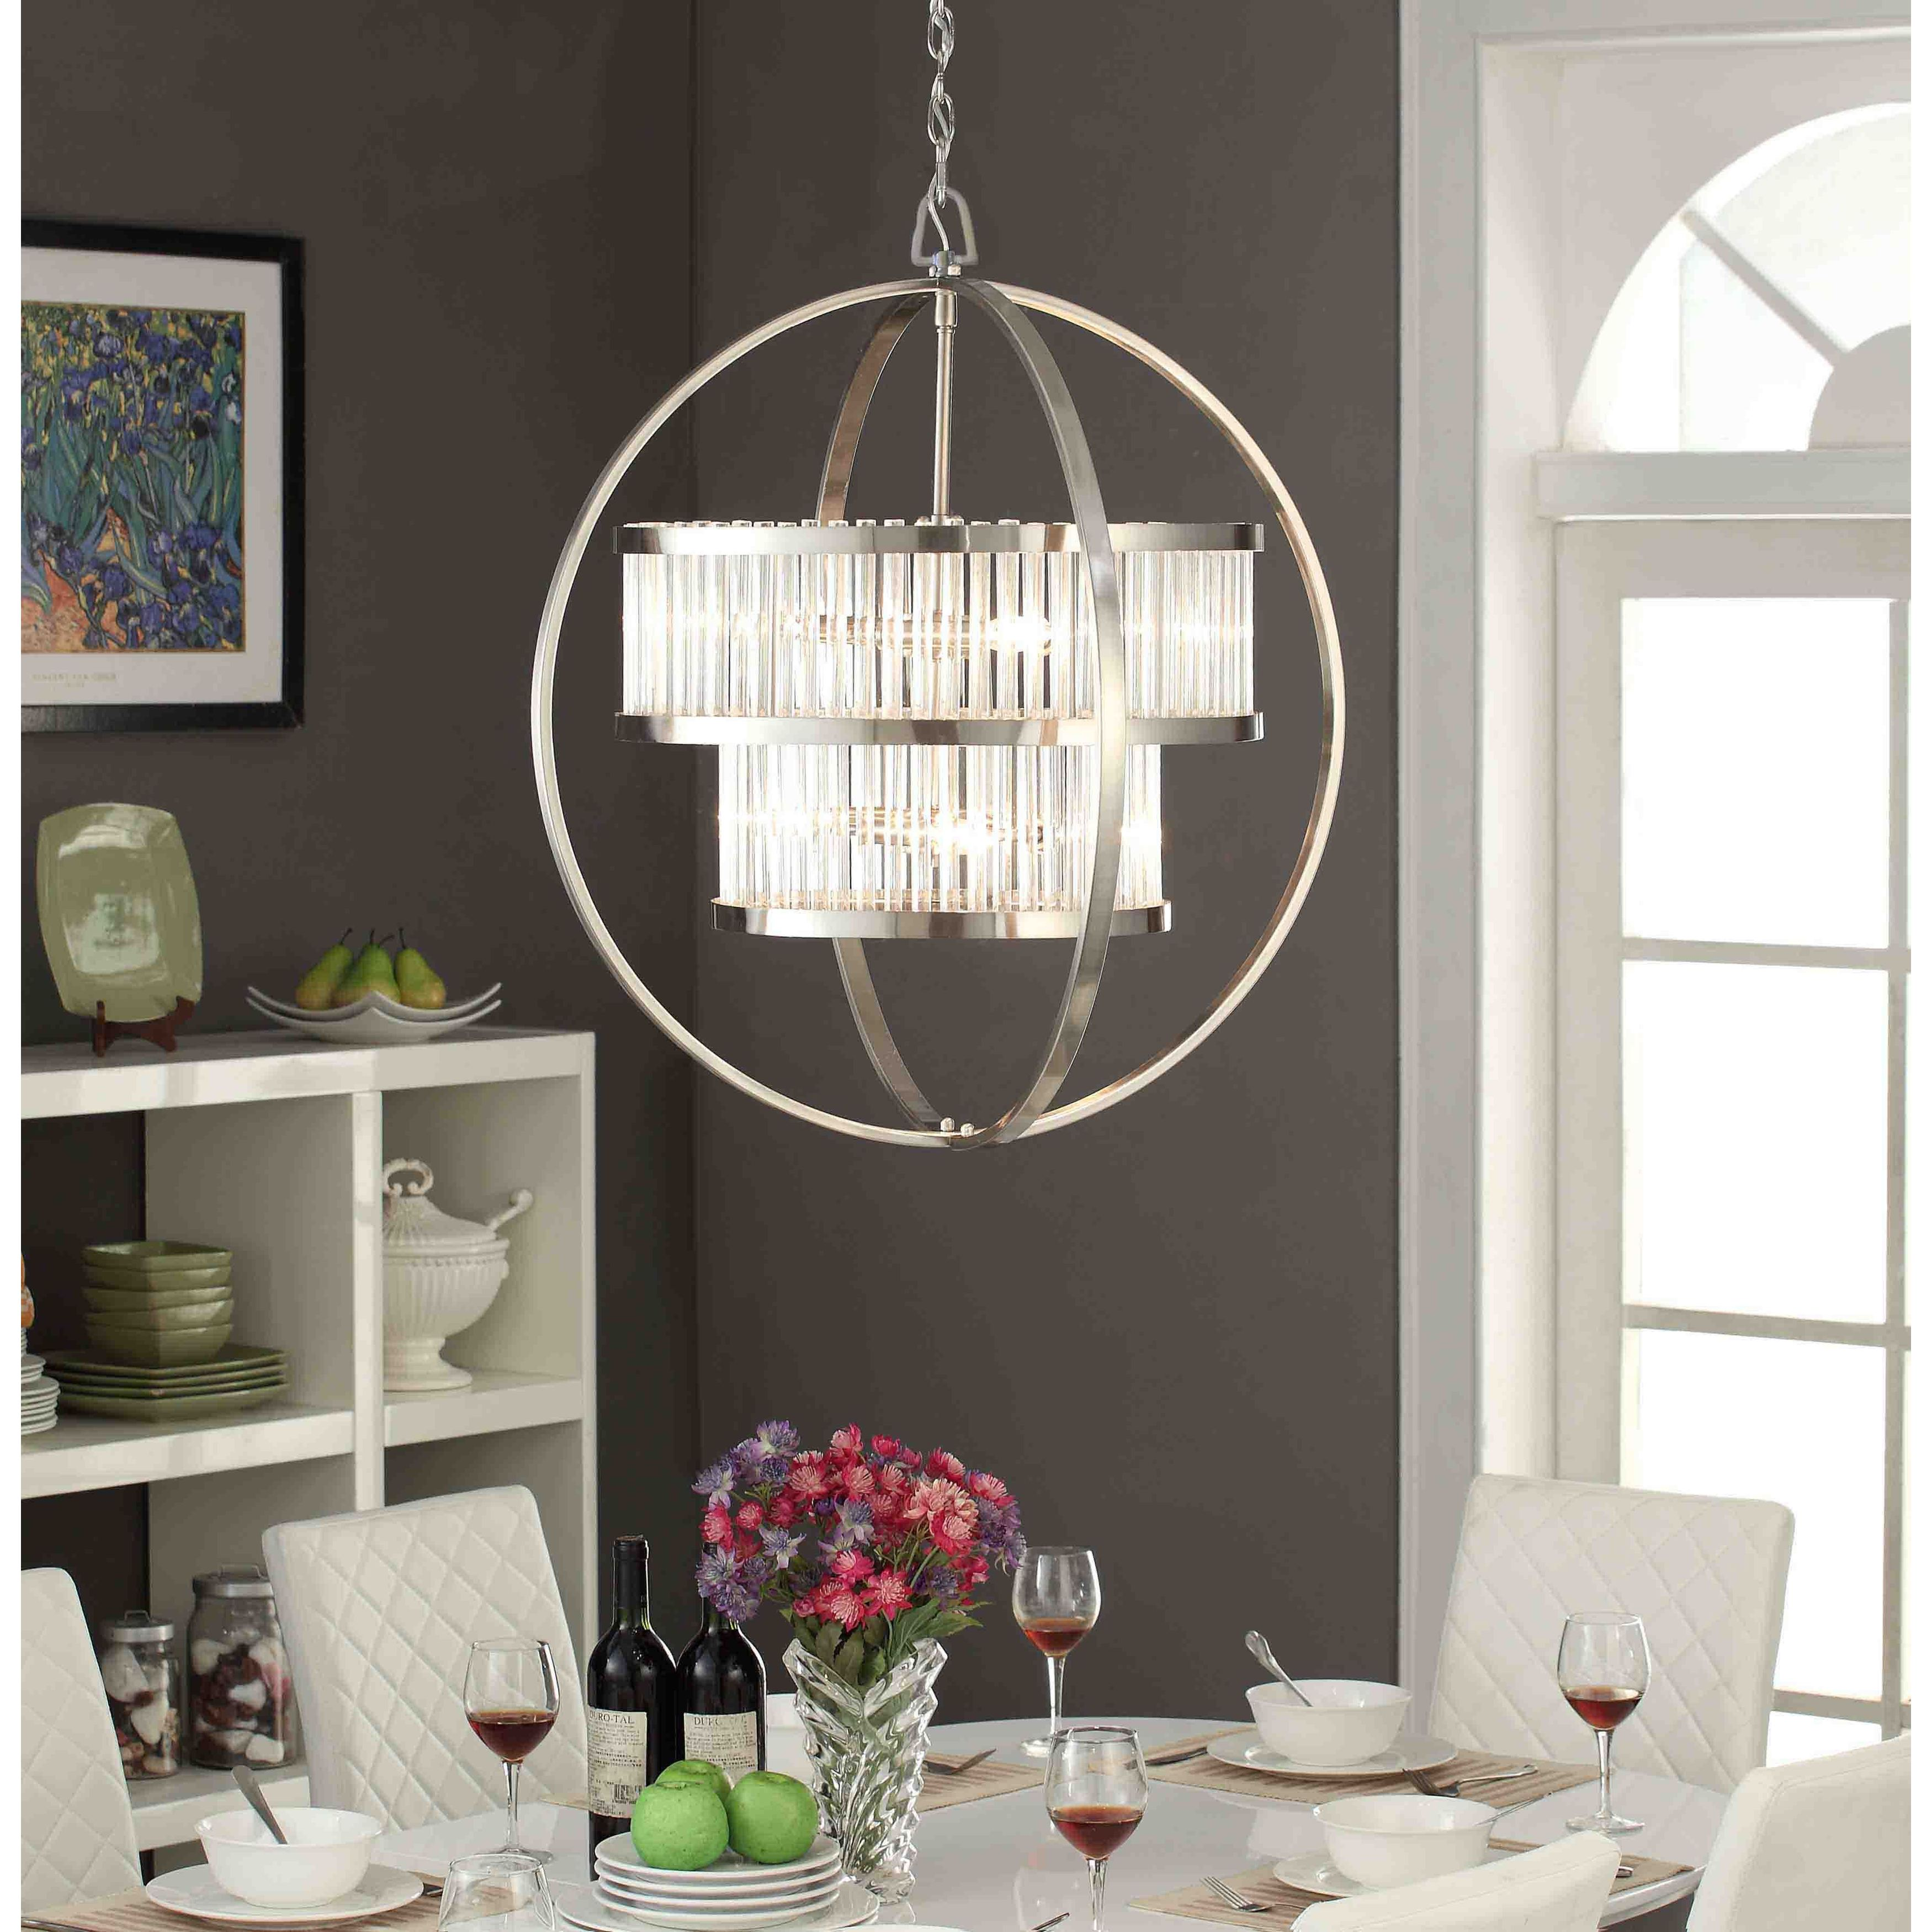 chandeliers entryway light pendant modern lighting chandelier reviews barge pdx la foundry wayfair foyer laurel farmhouse